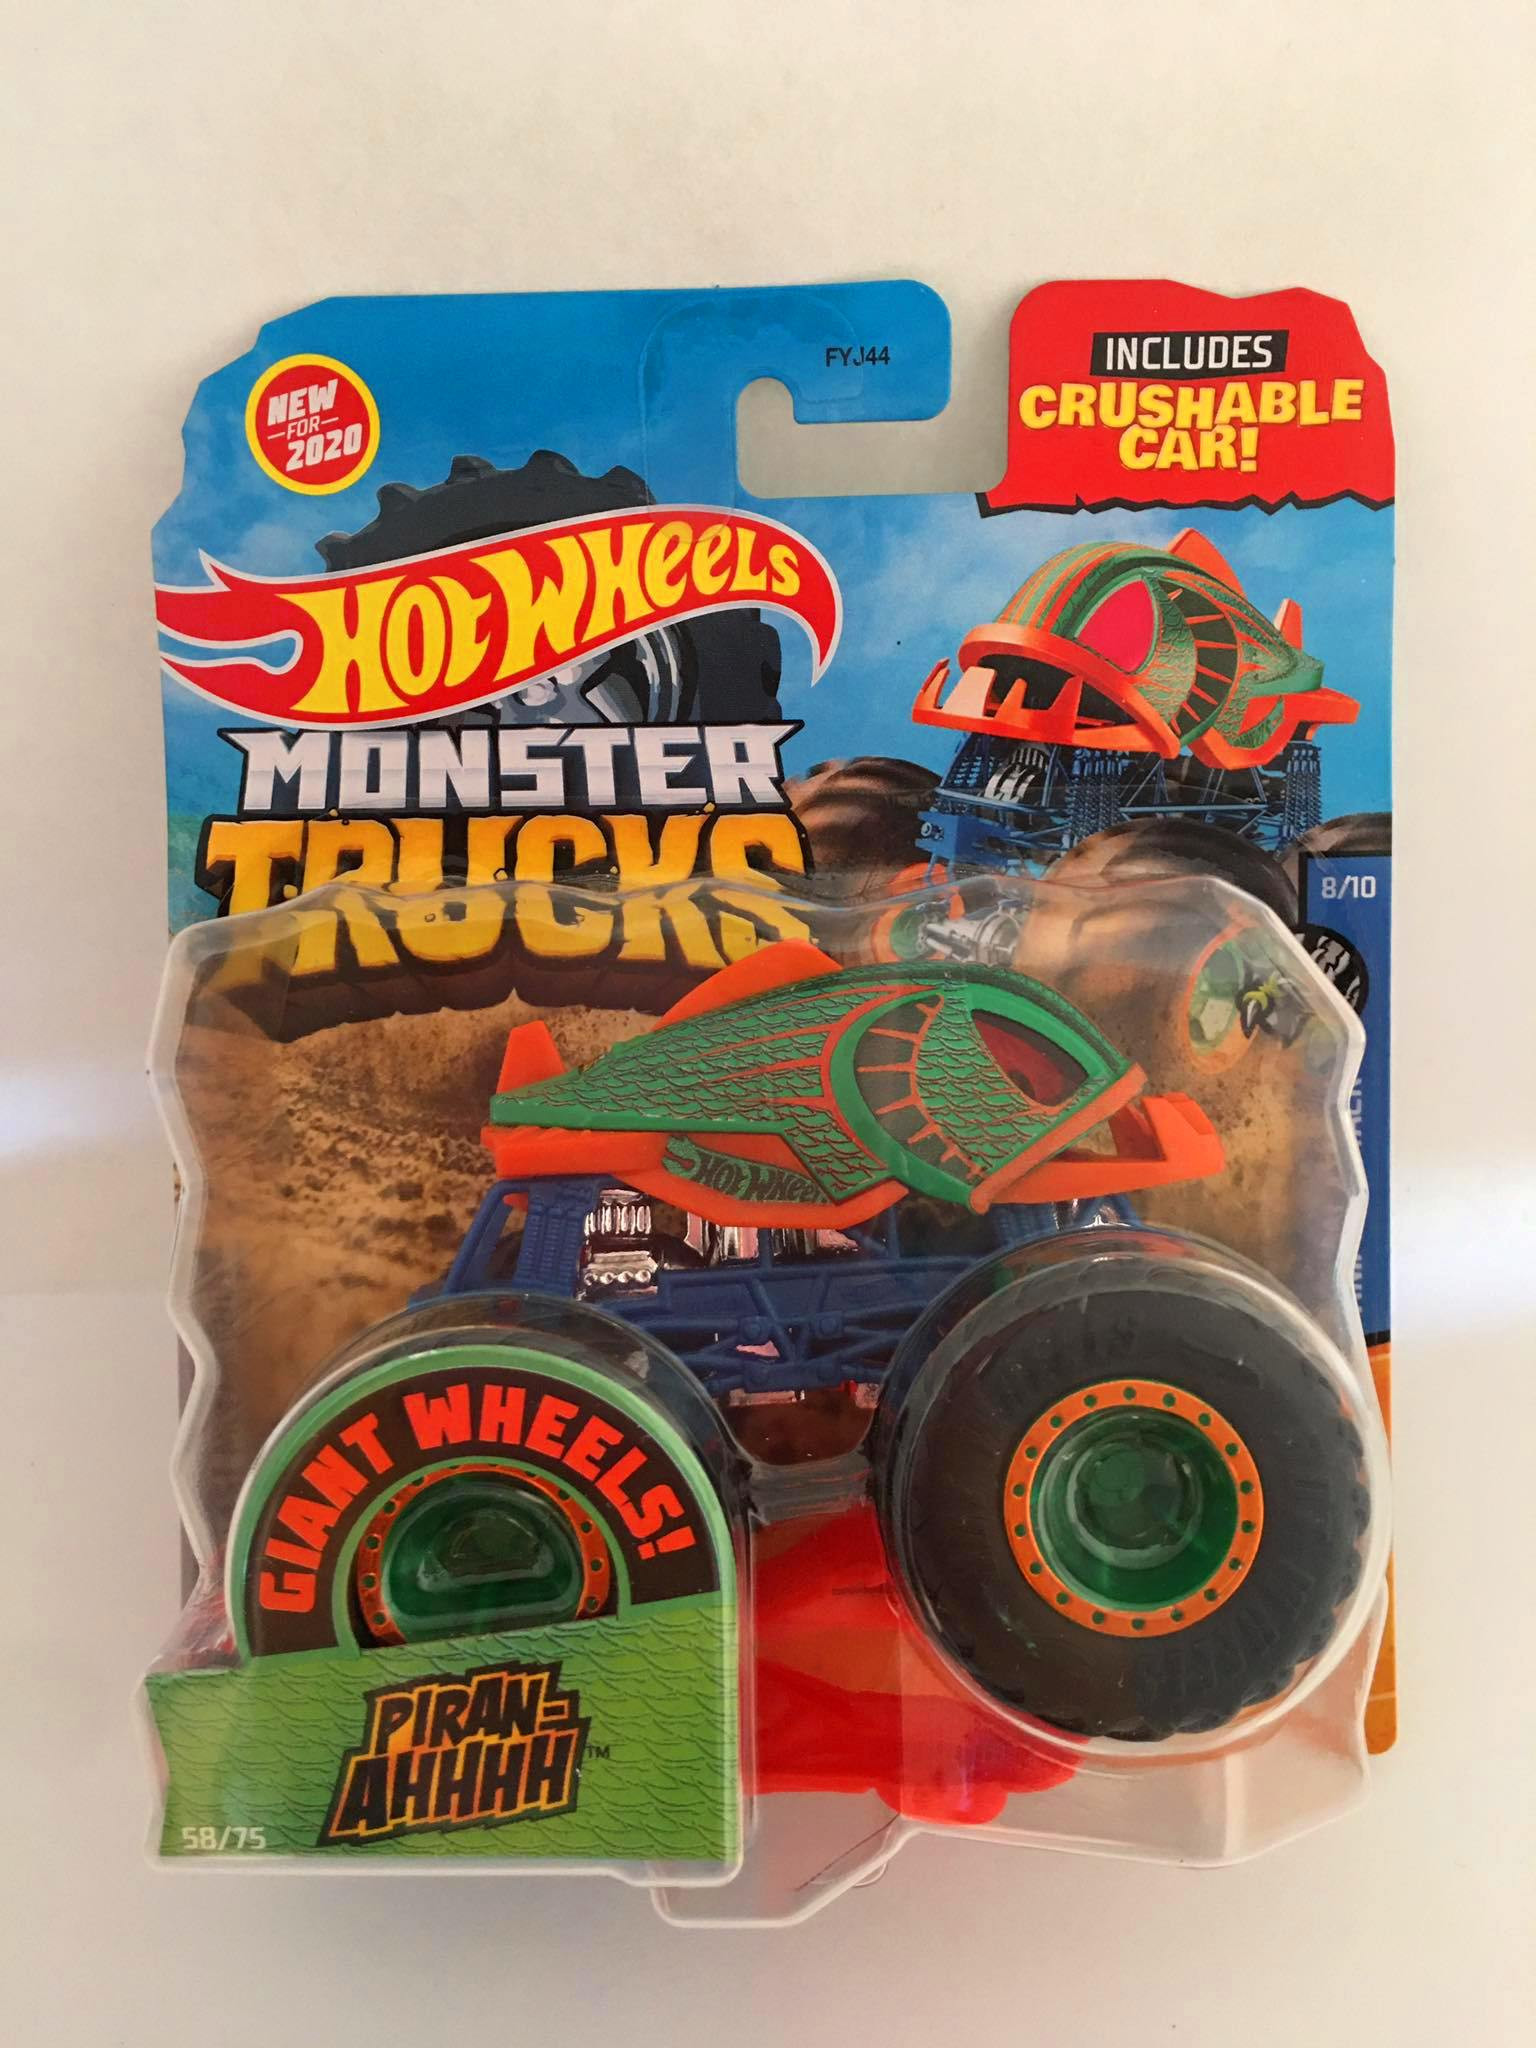 Hot Wheels - Piran-ahhhh Verde - Giant Whee Preto - Monster Trucks